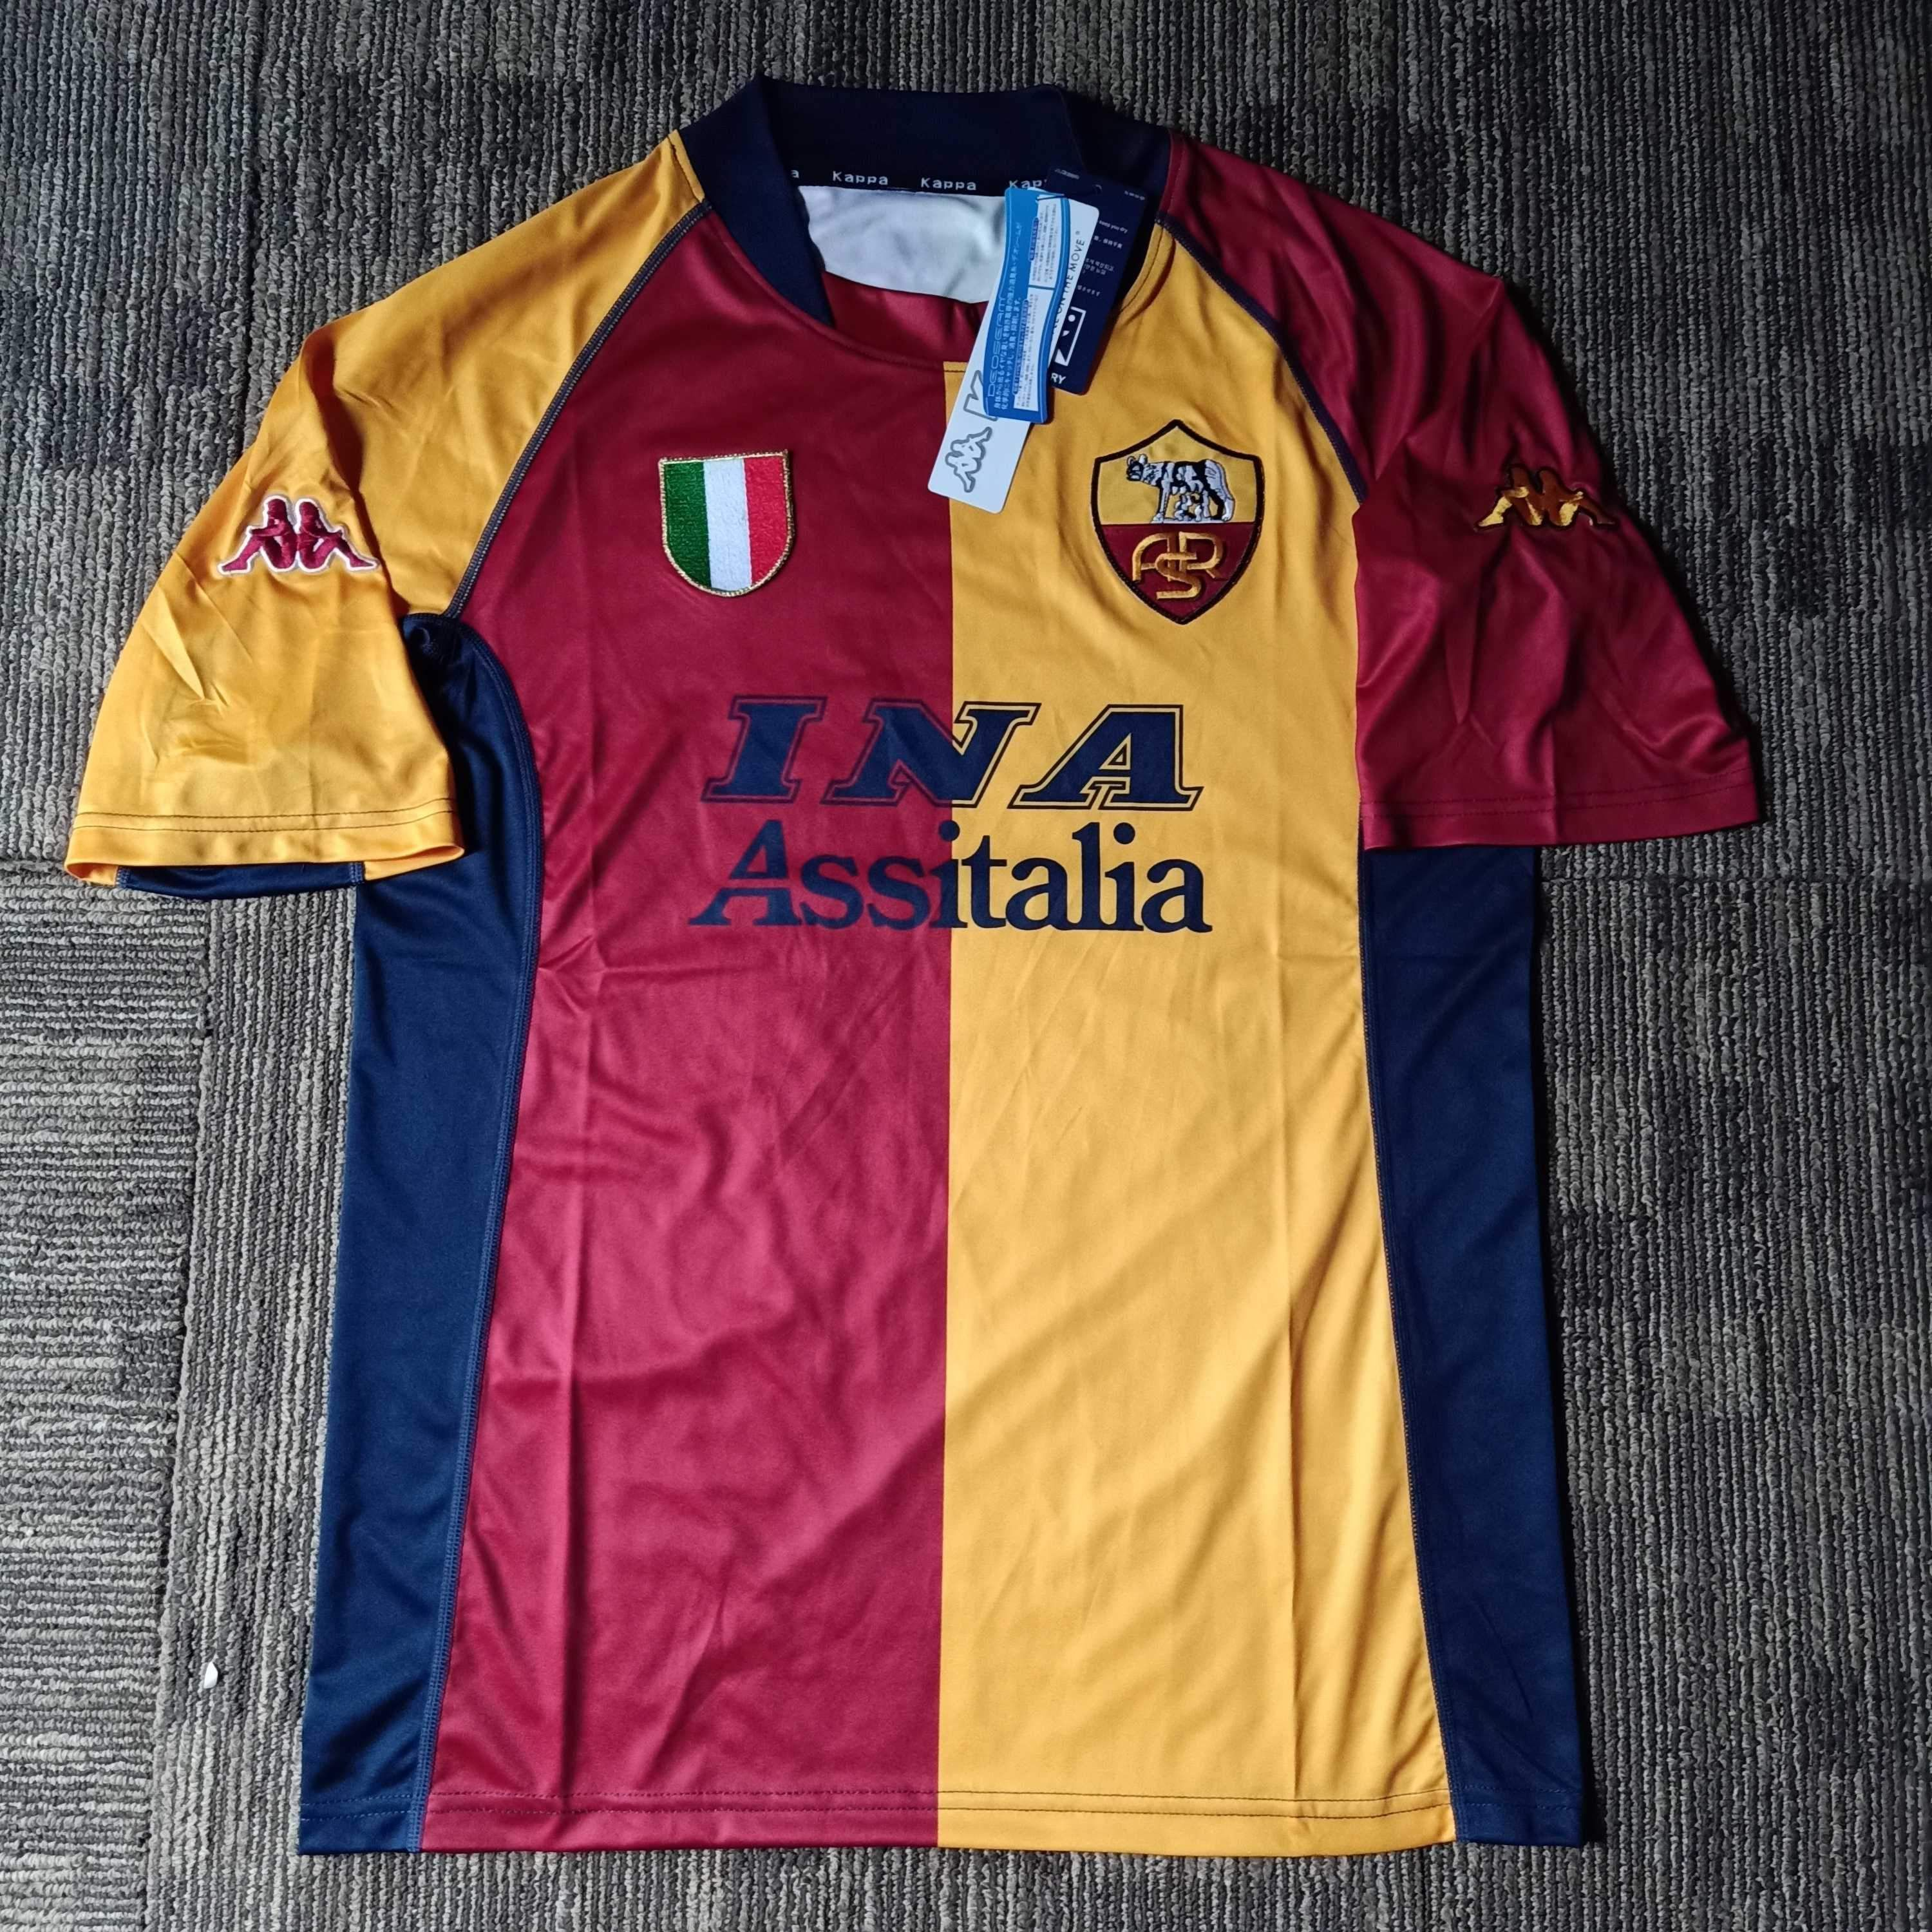 2001 02 As Roma Home Shirt In 2020 As Roma Shirts Vintage Jerseys